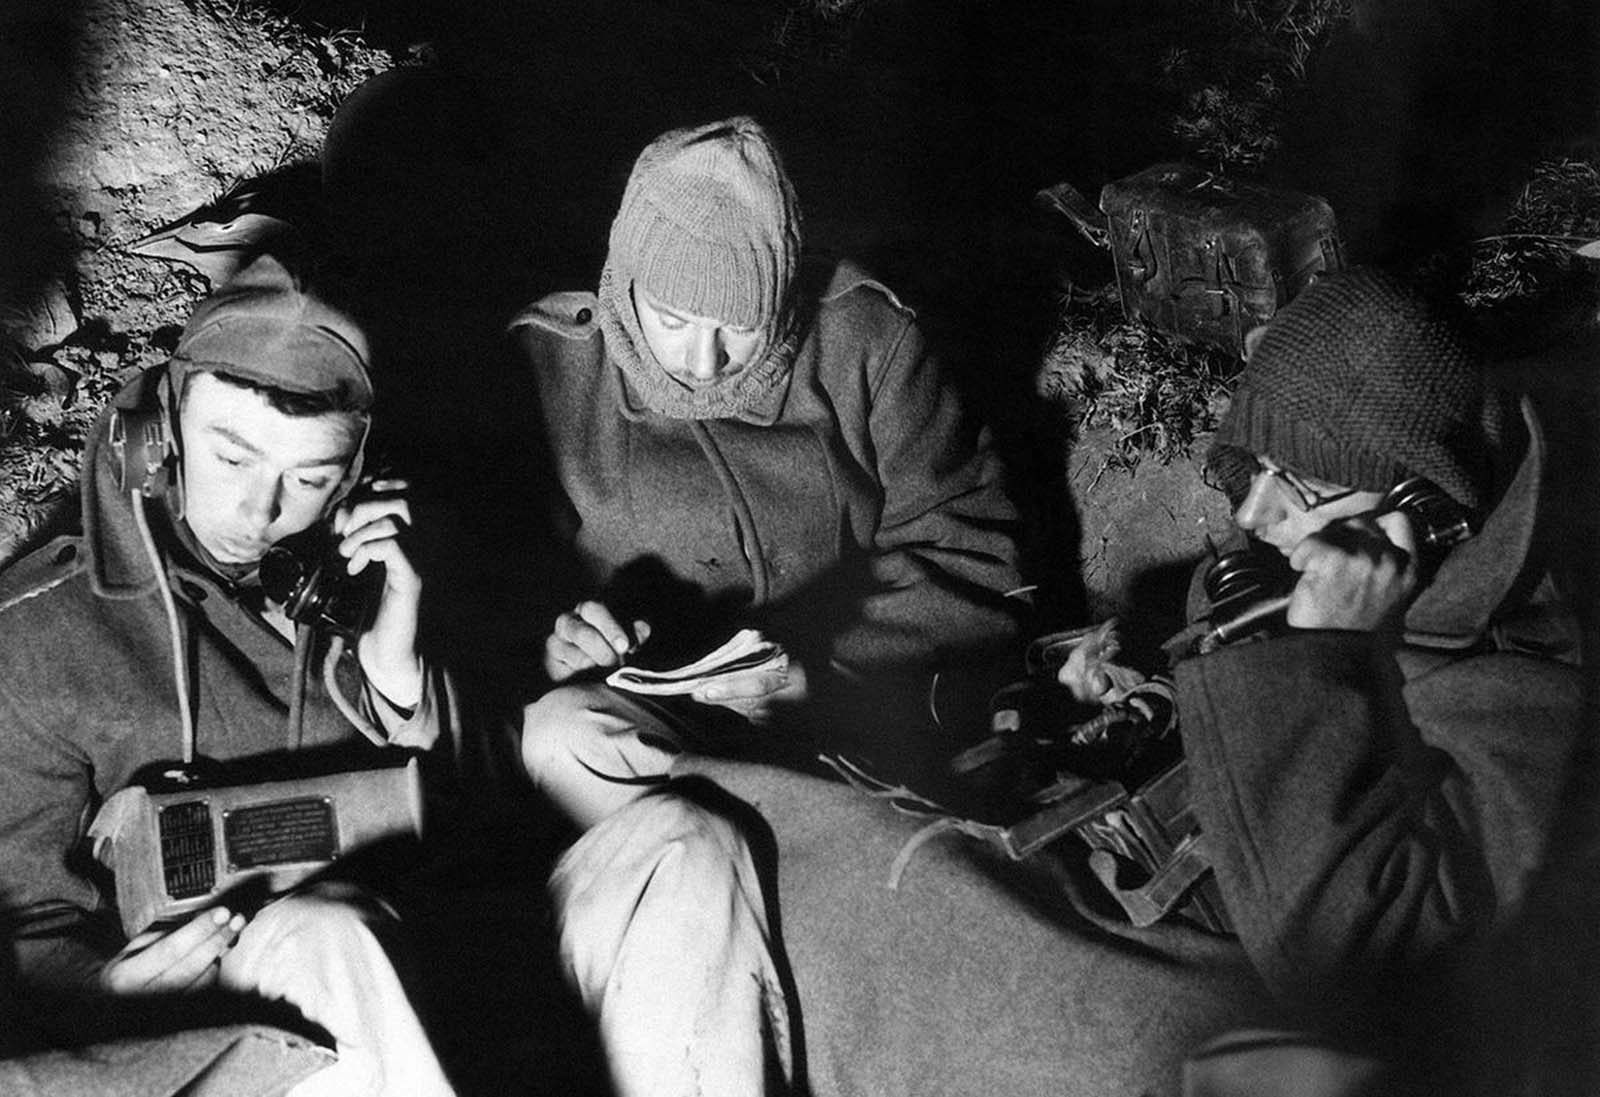 Artillery Signalers at dawn in an outpost in Palestine on December 16. 1940. The men dress warmly to keep out the chill of the desert.